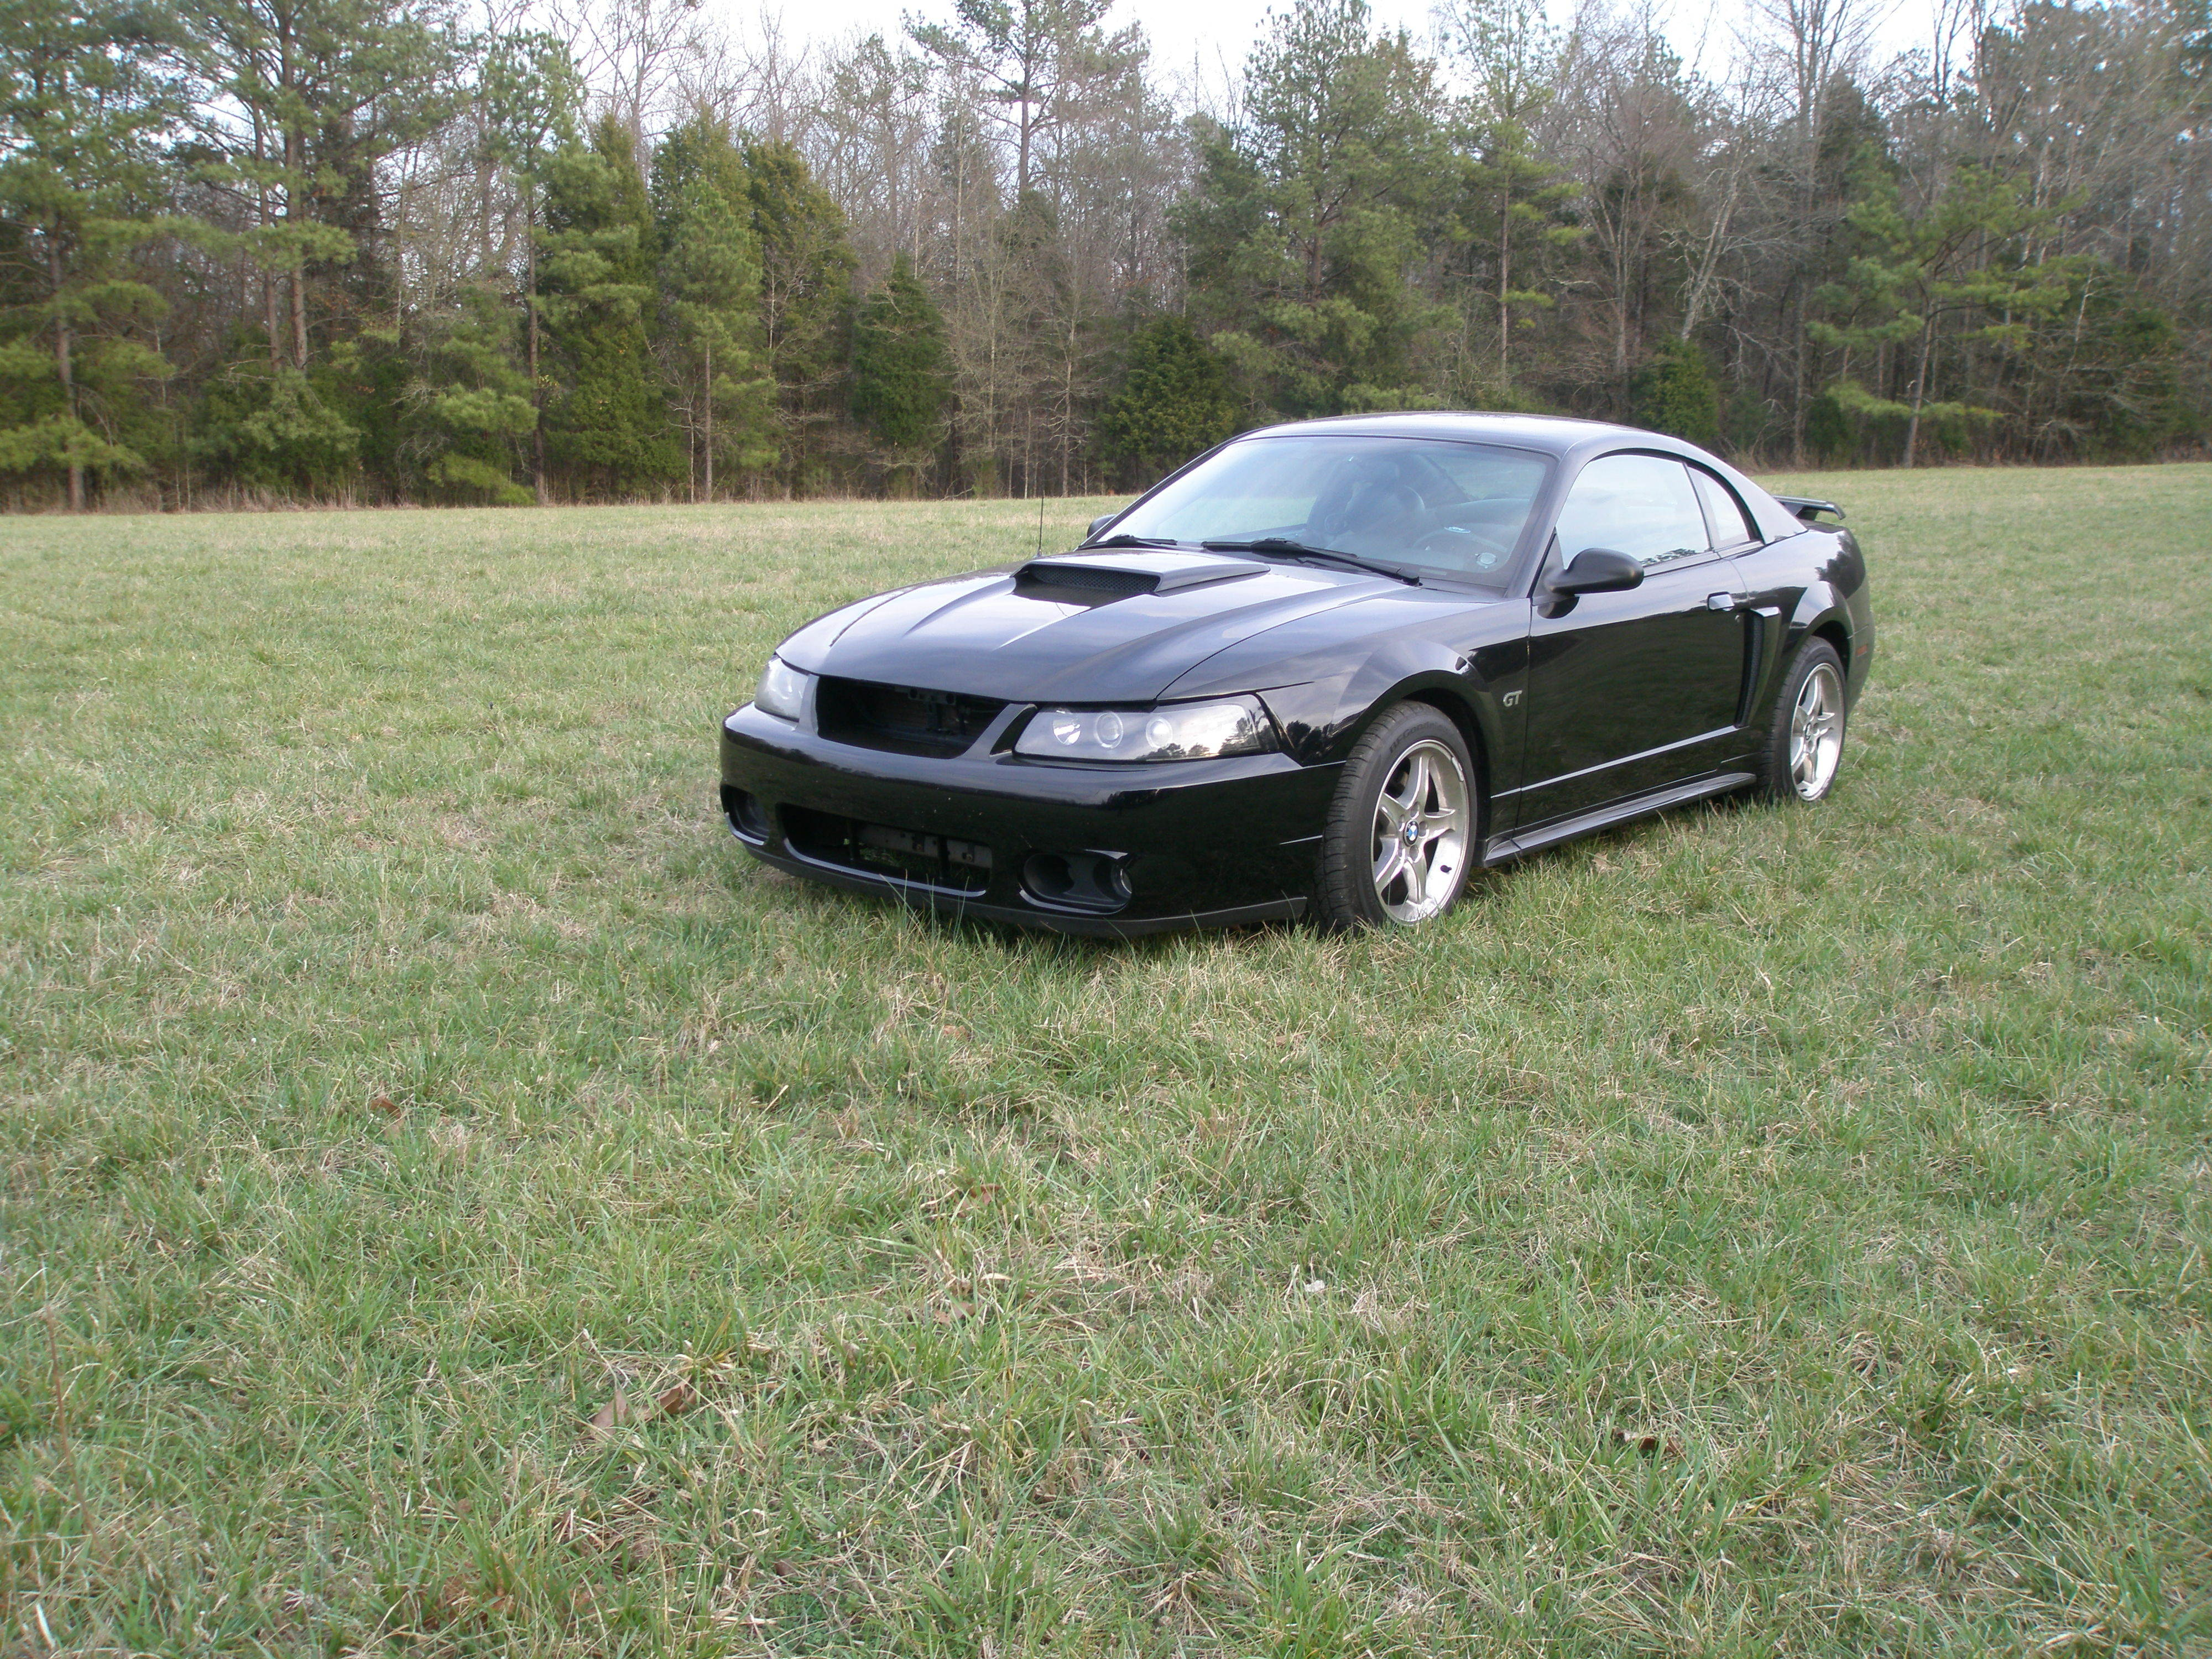 mustangman281 39 s 2003 ford mustang in greenwood sc. Black Bedroom Furniture Sets. Home Design Ideas